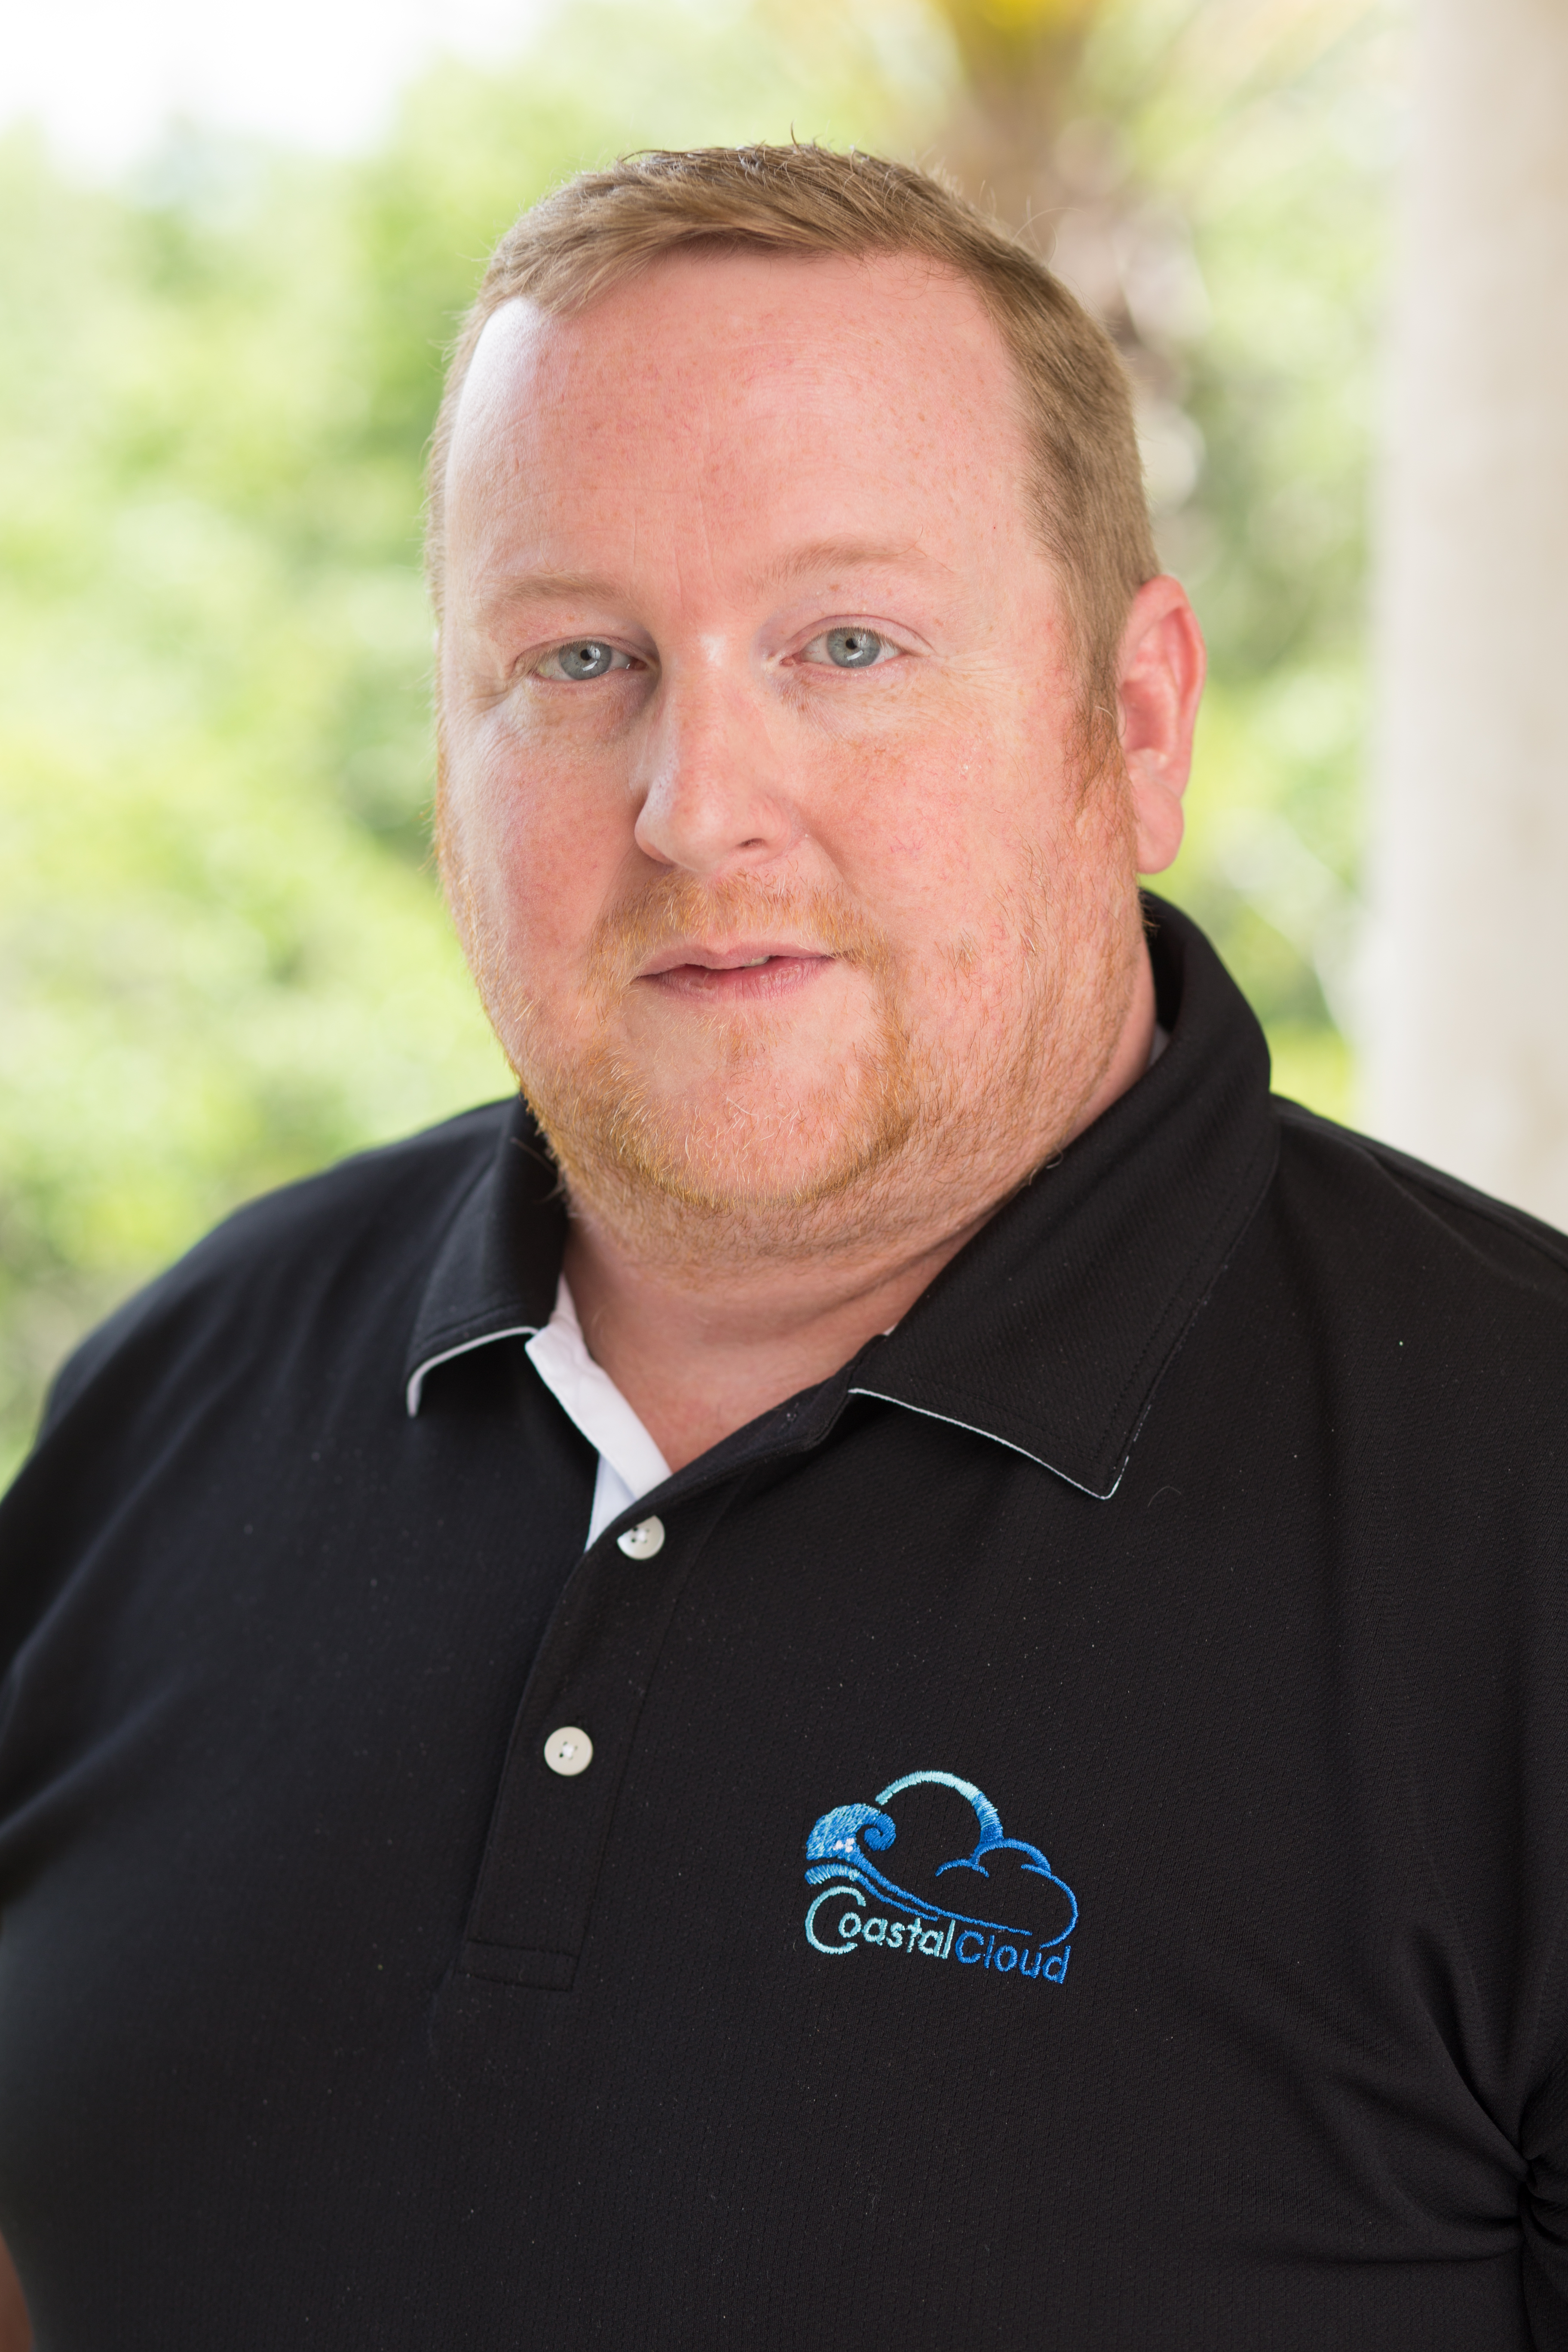 Charles Varner IT Consultant marks 20 years in the field